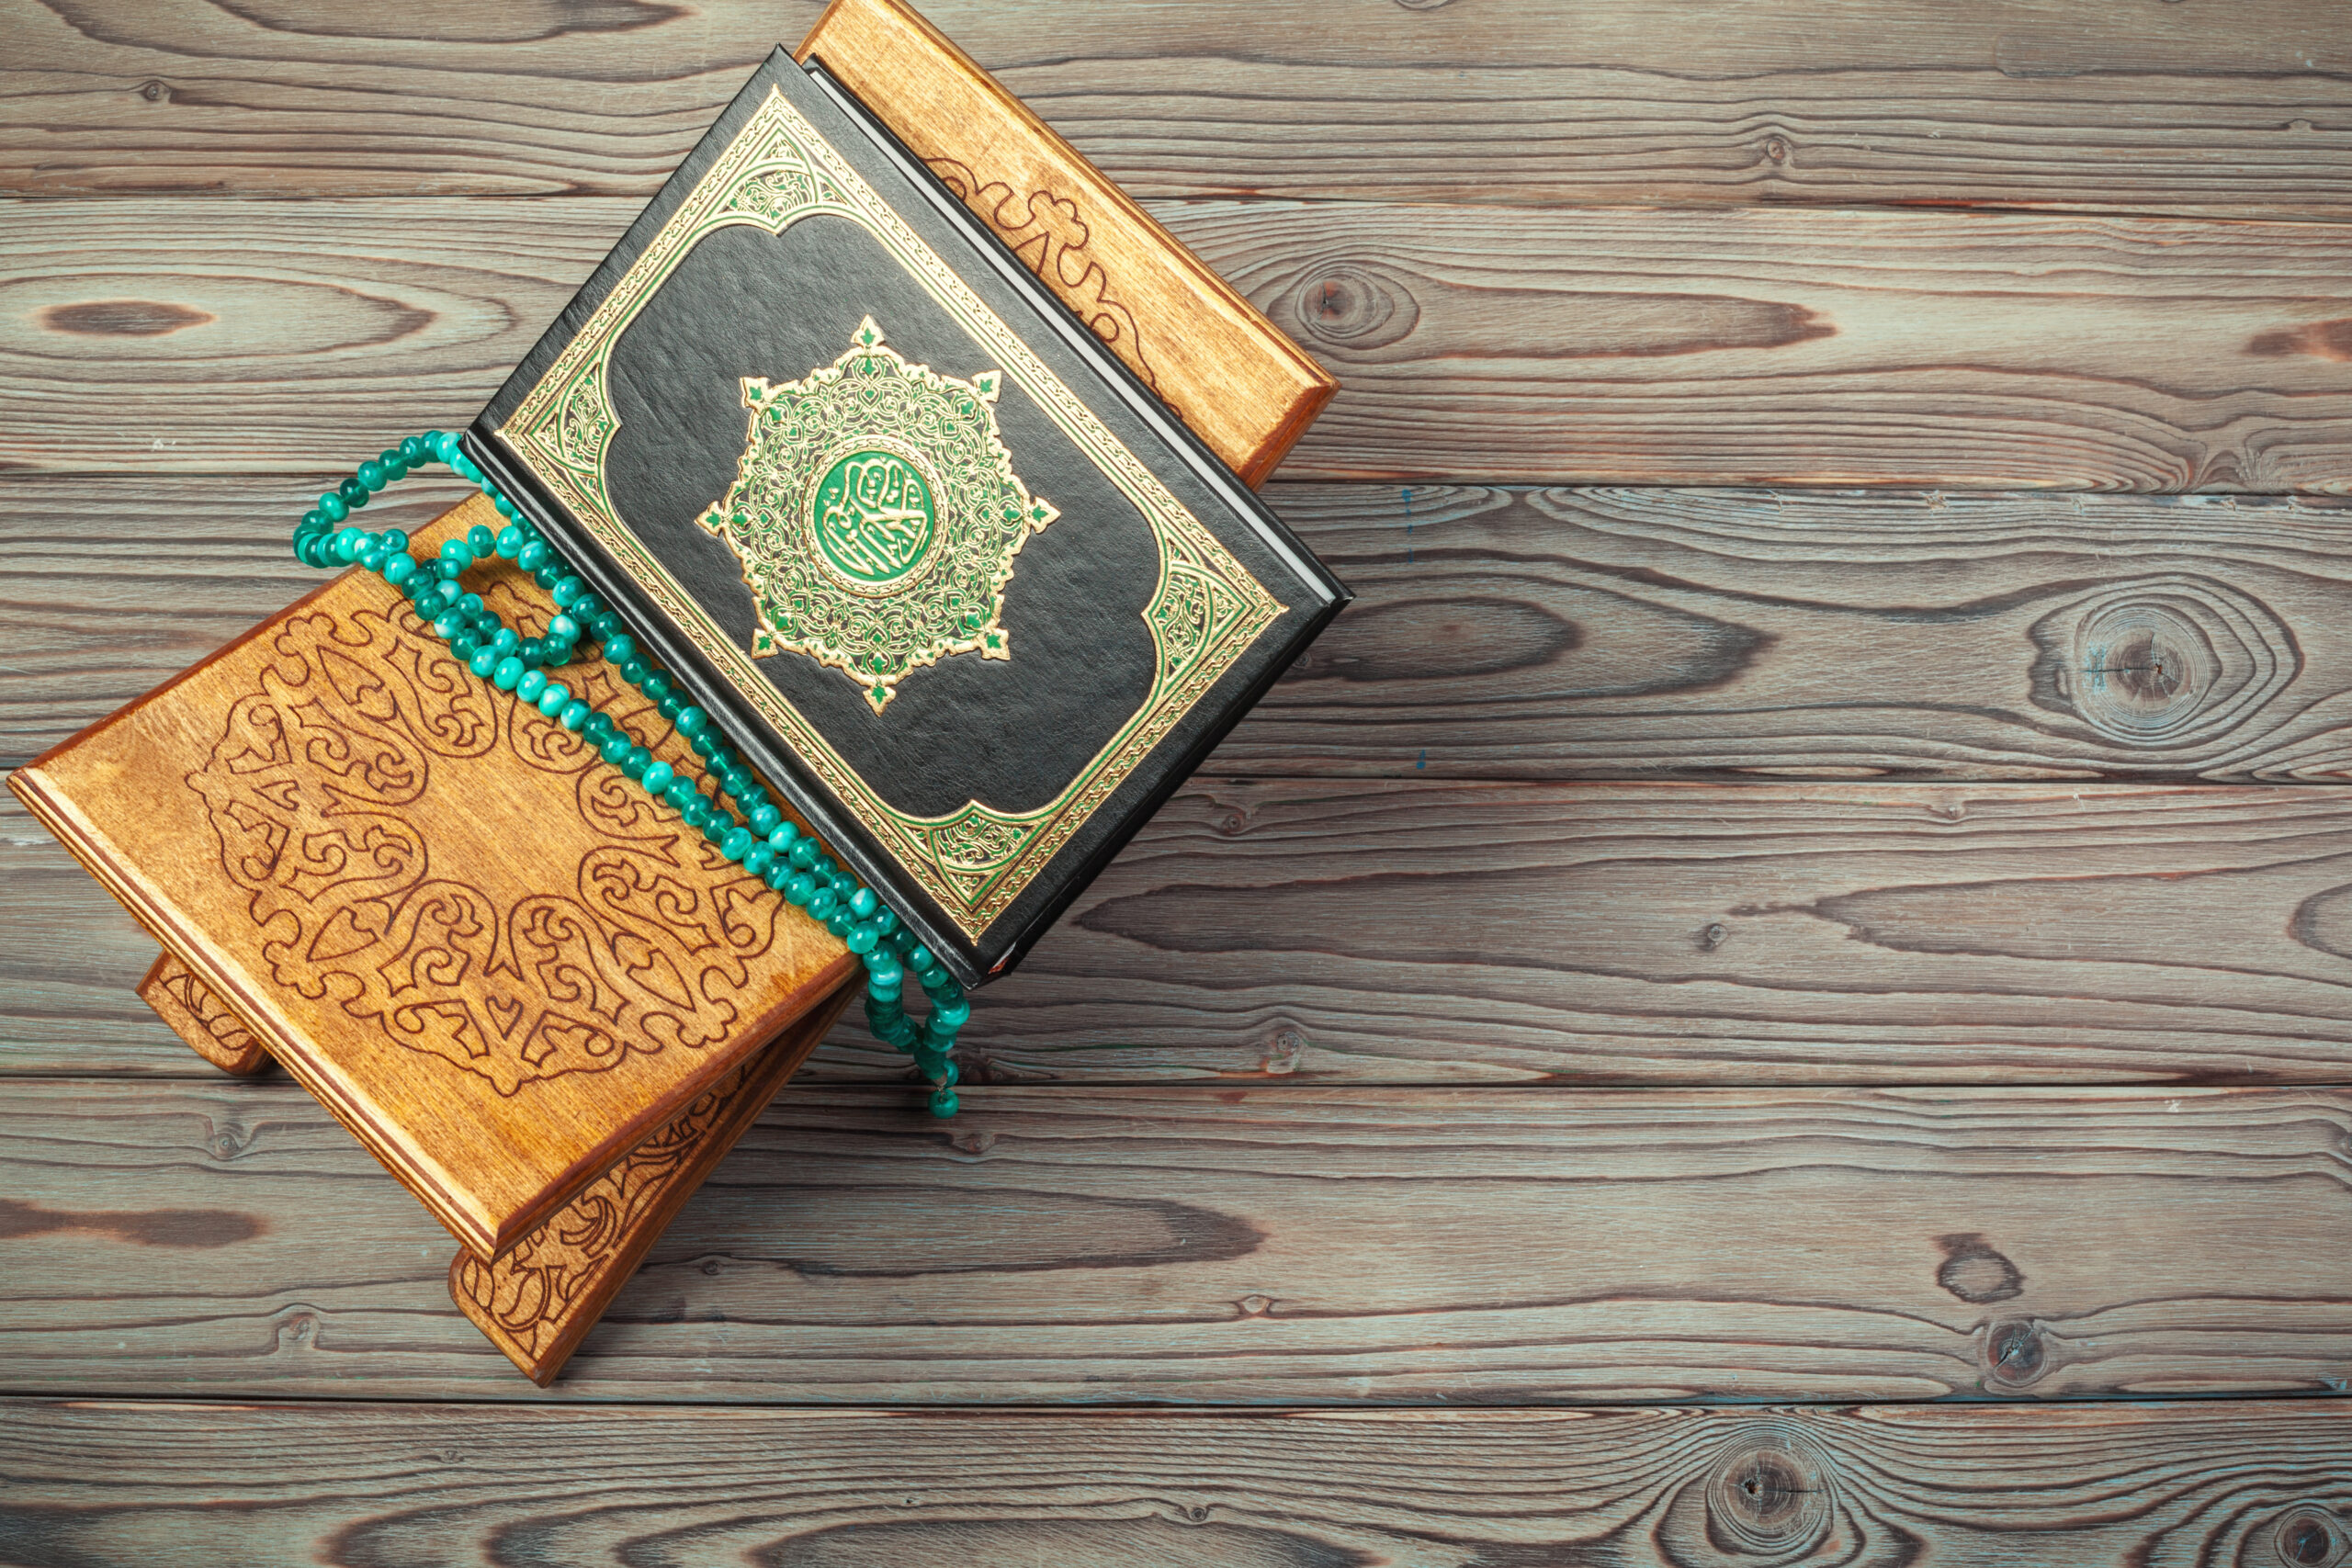 The holy book of the Quran